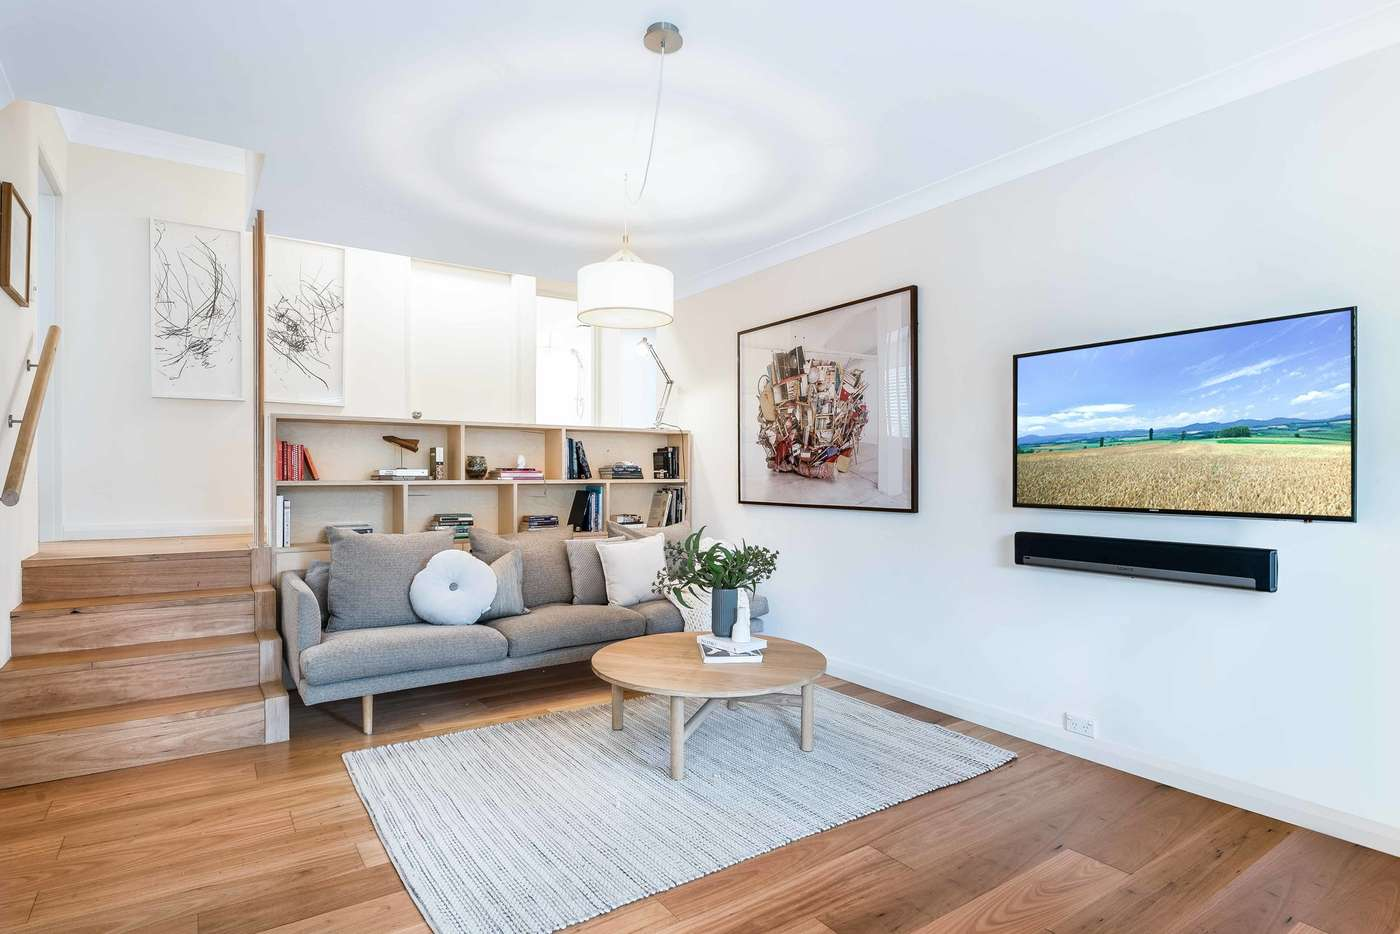 Main view of Homely apartment listing, 7/183-187 Hampden Road, Wareemba NSW 2046